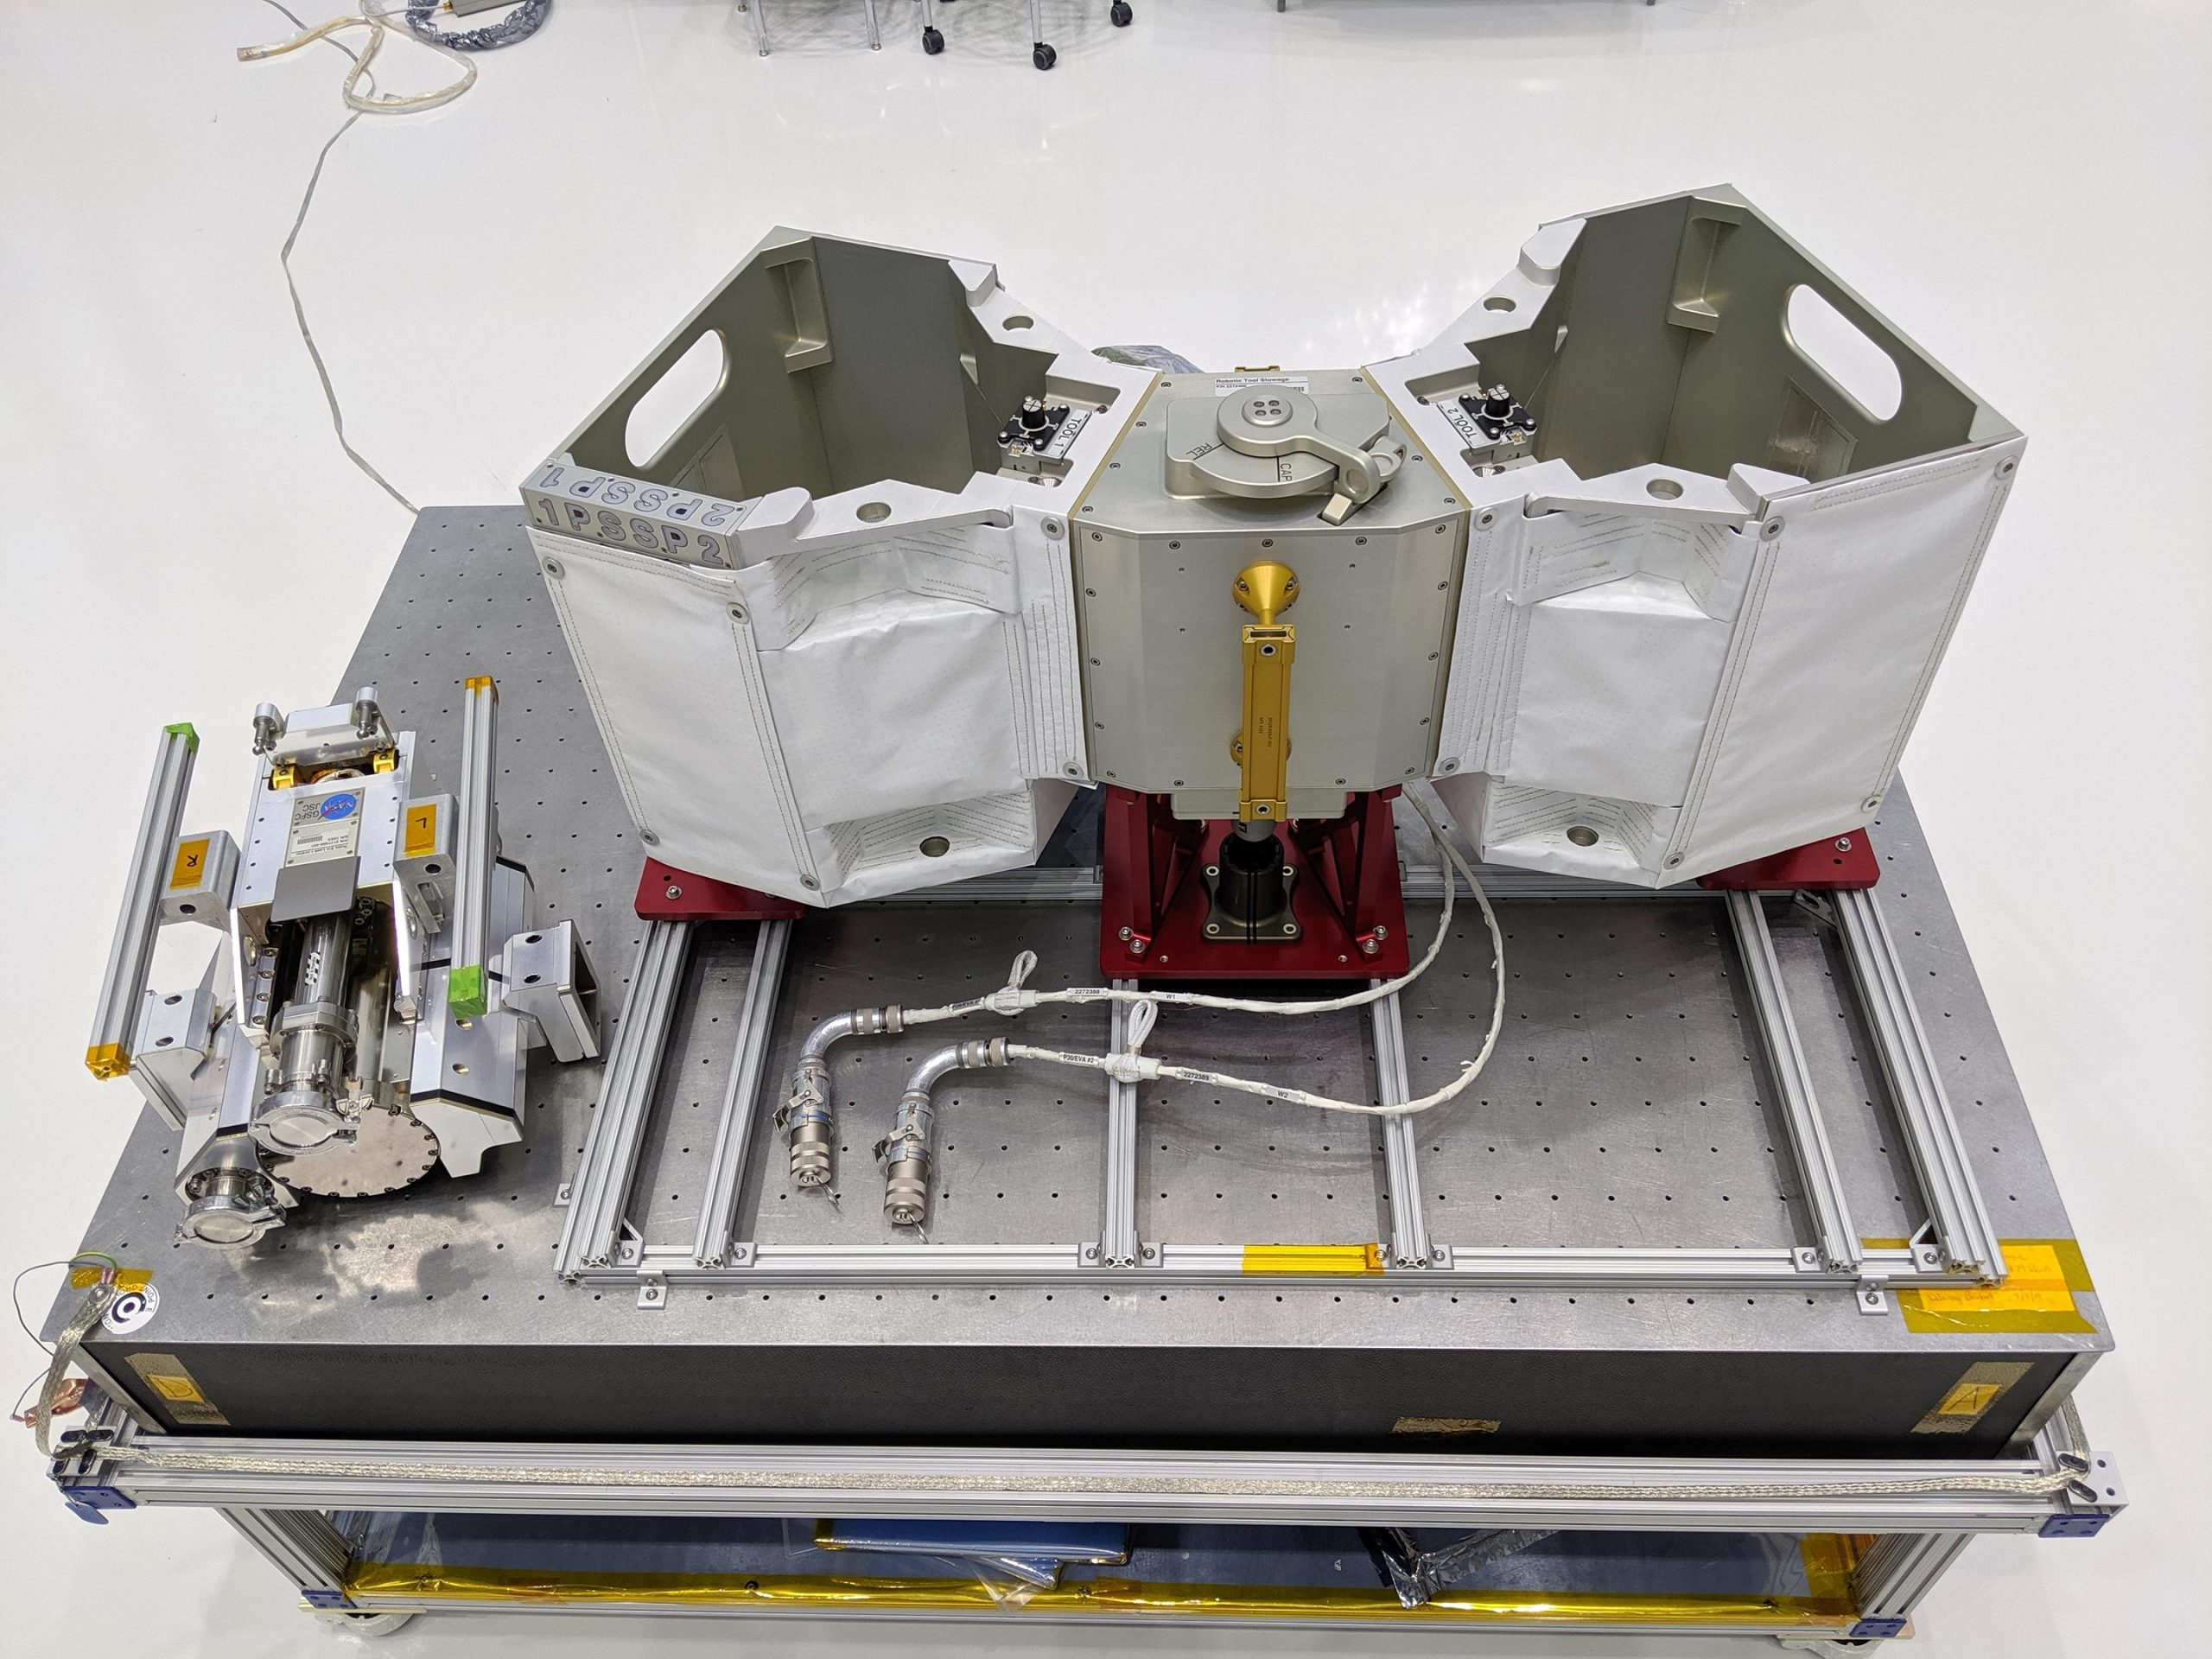 NASA to launch 'robot hotel' to Int'l Space Station